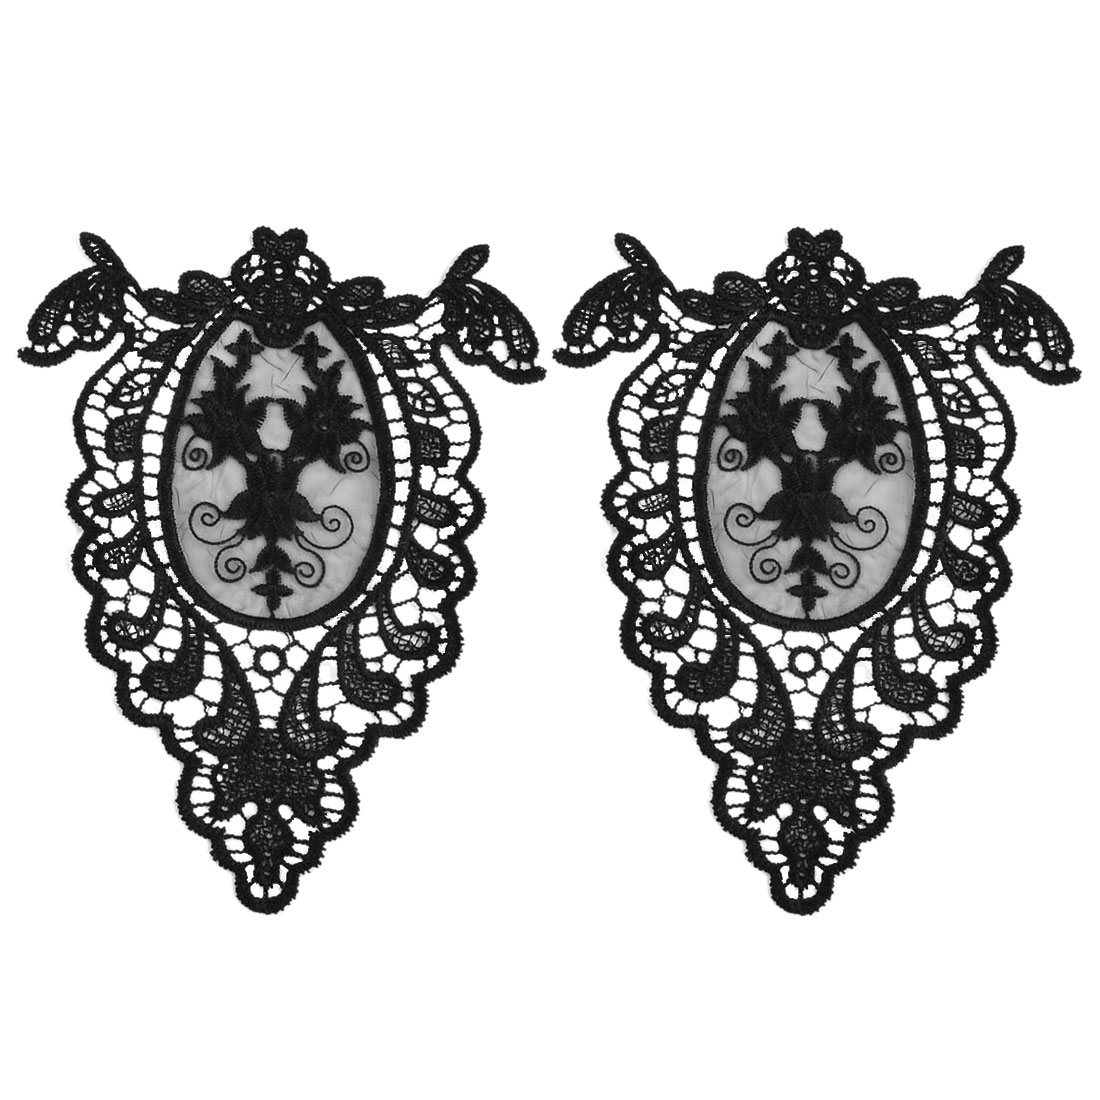 Polyester Hollow Out Design Embroidered DIY Handicraft Collar Patch Sewing Lace Trim Pair